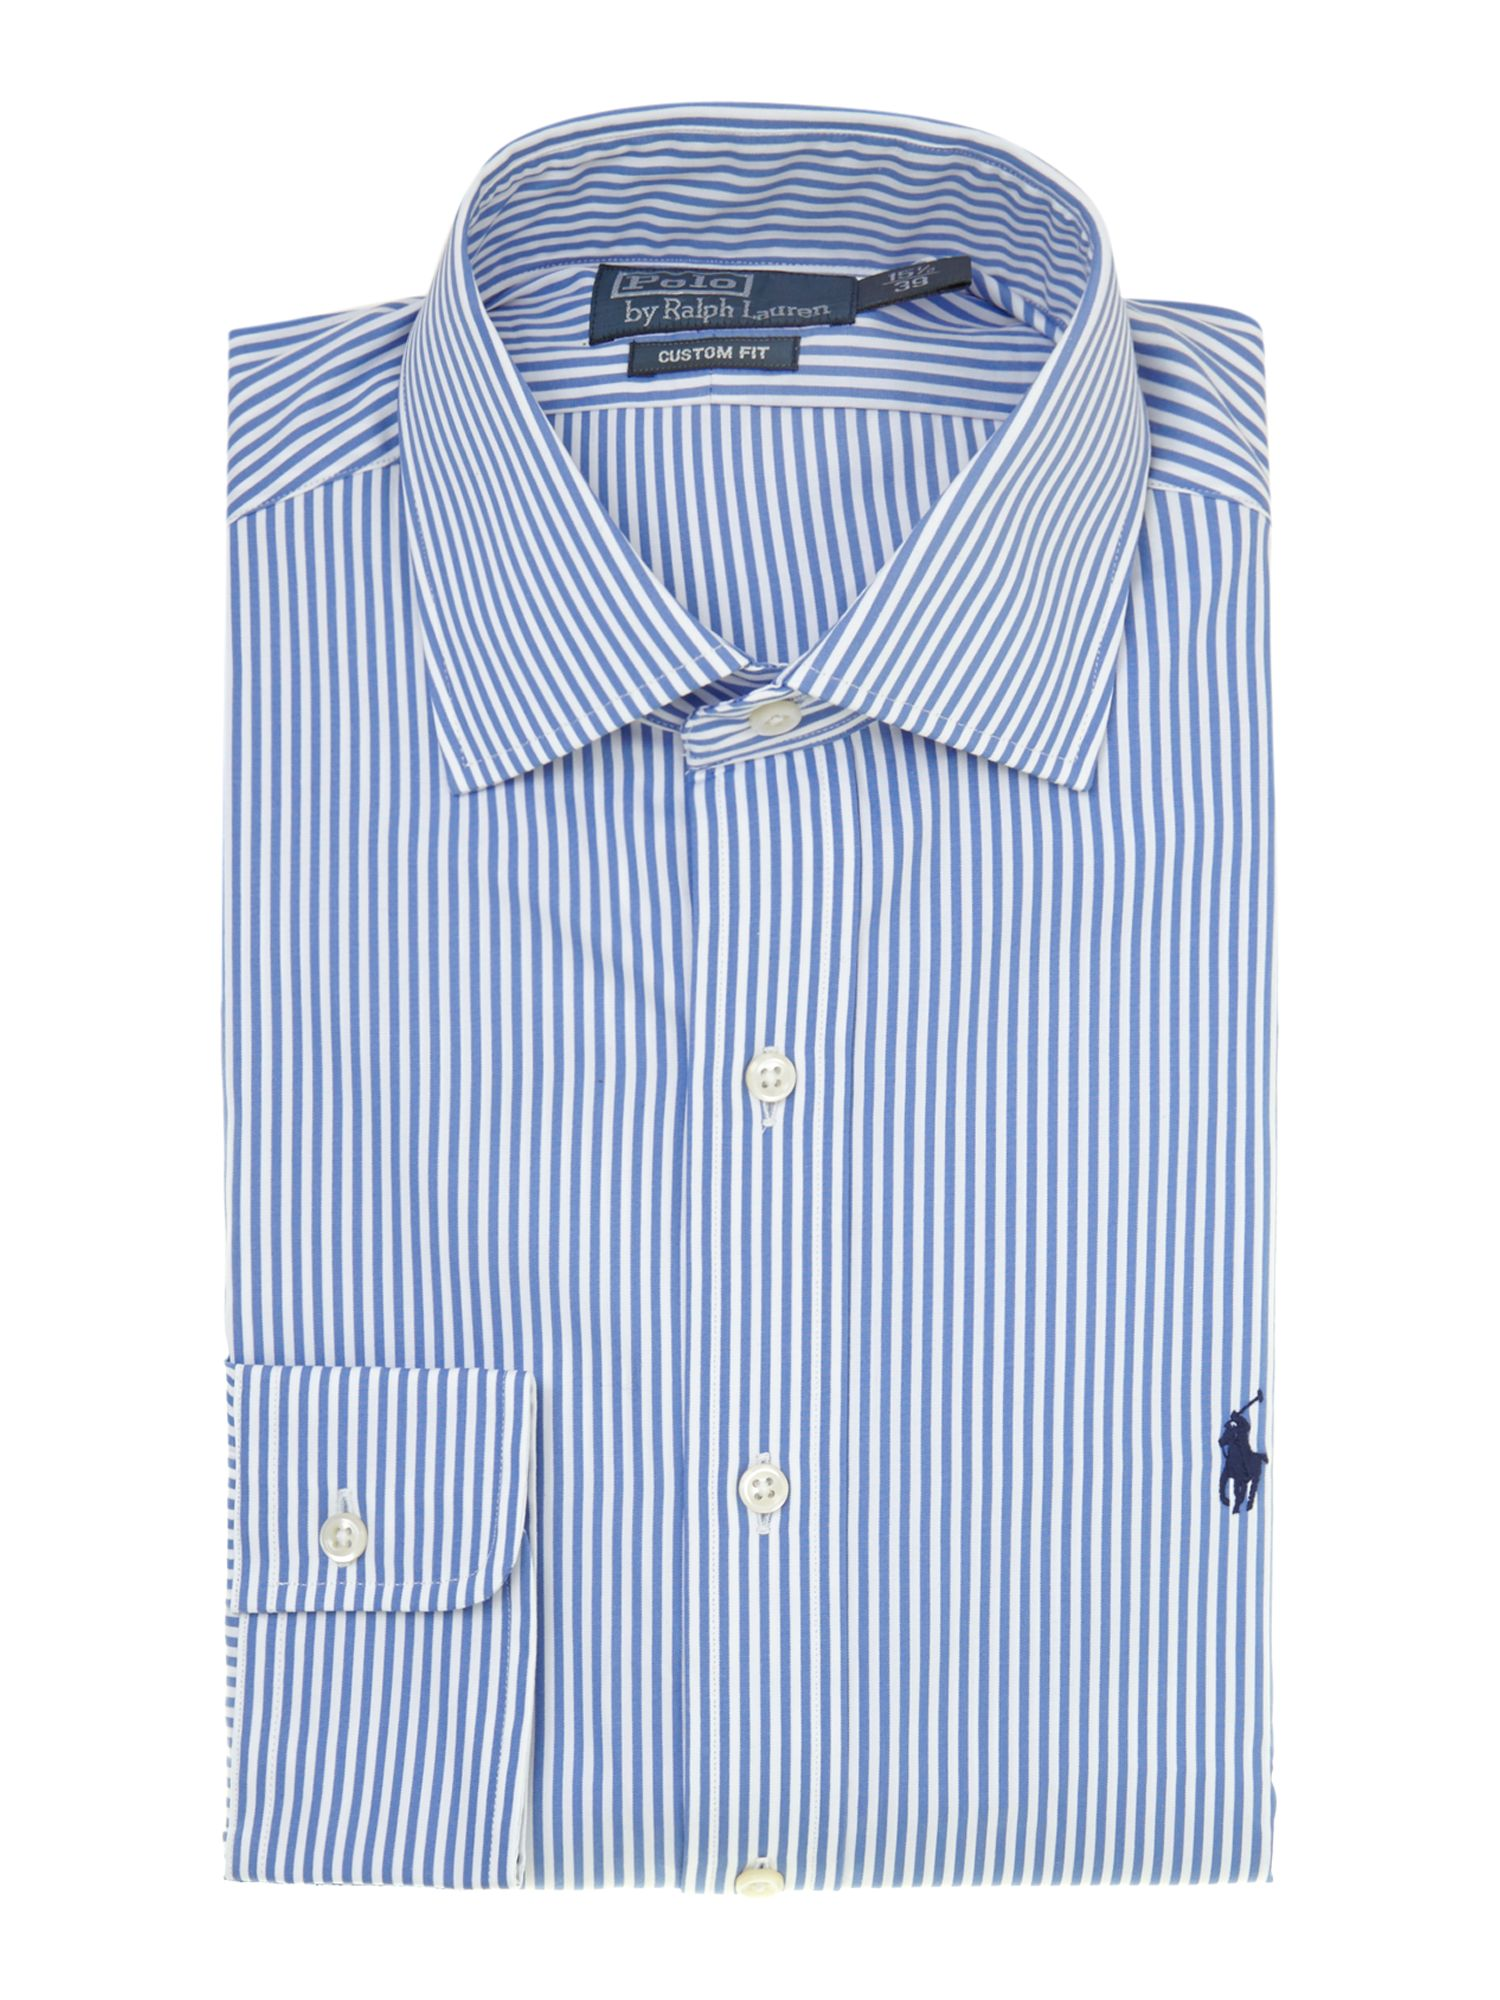 Long sleeve custom fit regent fine stripe shirt